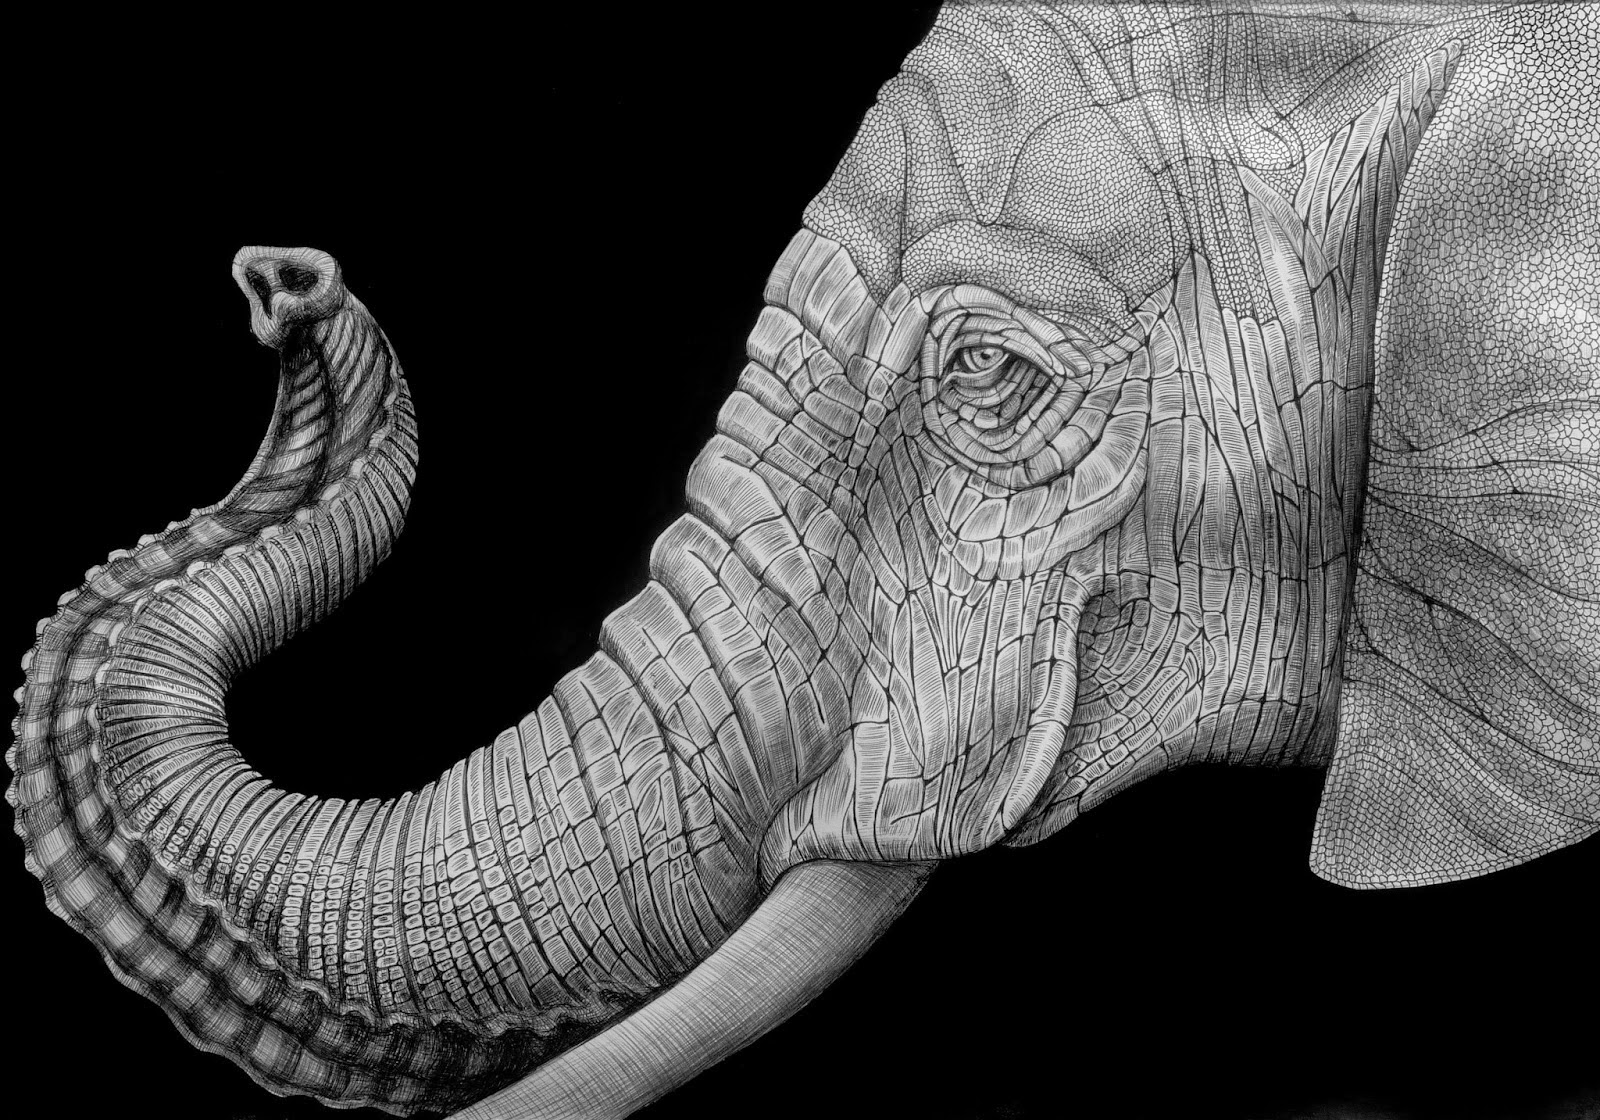 12-African-Elephant-Tim-Jeffs-All-Creatures-Great-and-Small-Ink-Drawings-www-designstack-co